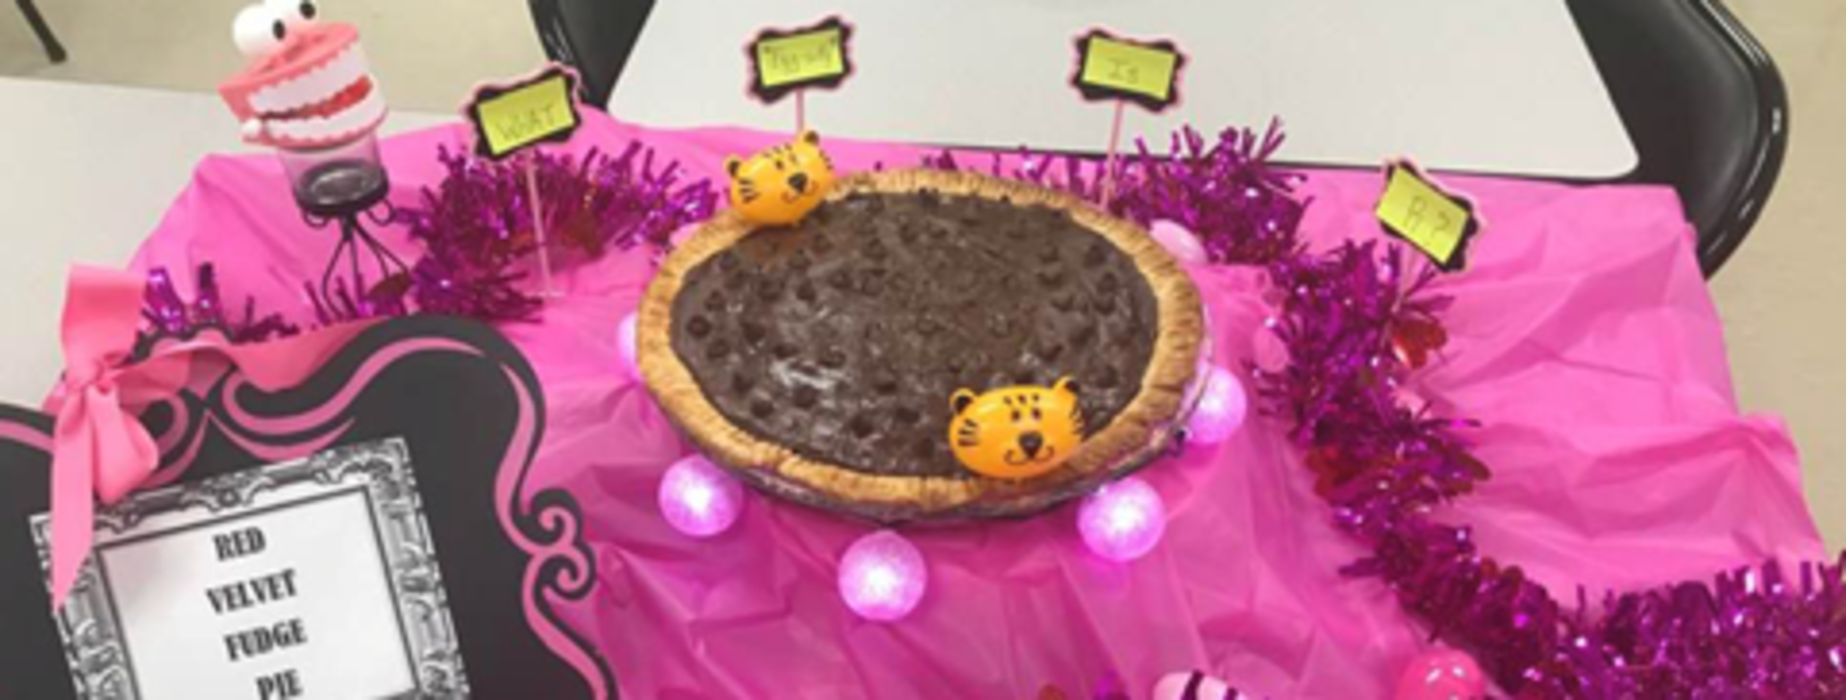 pi day pie competition